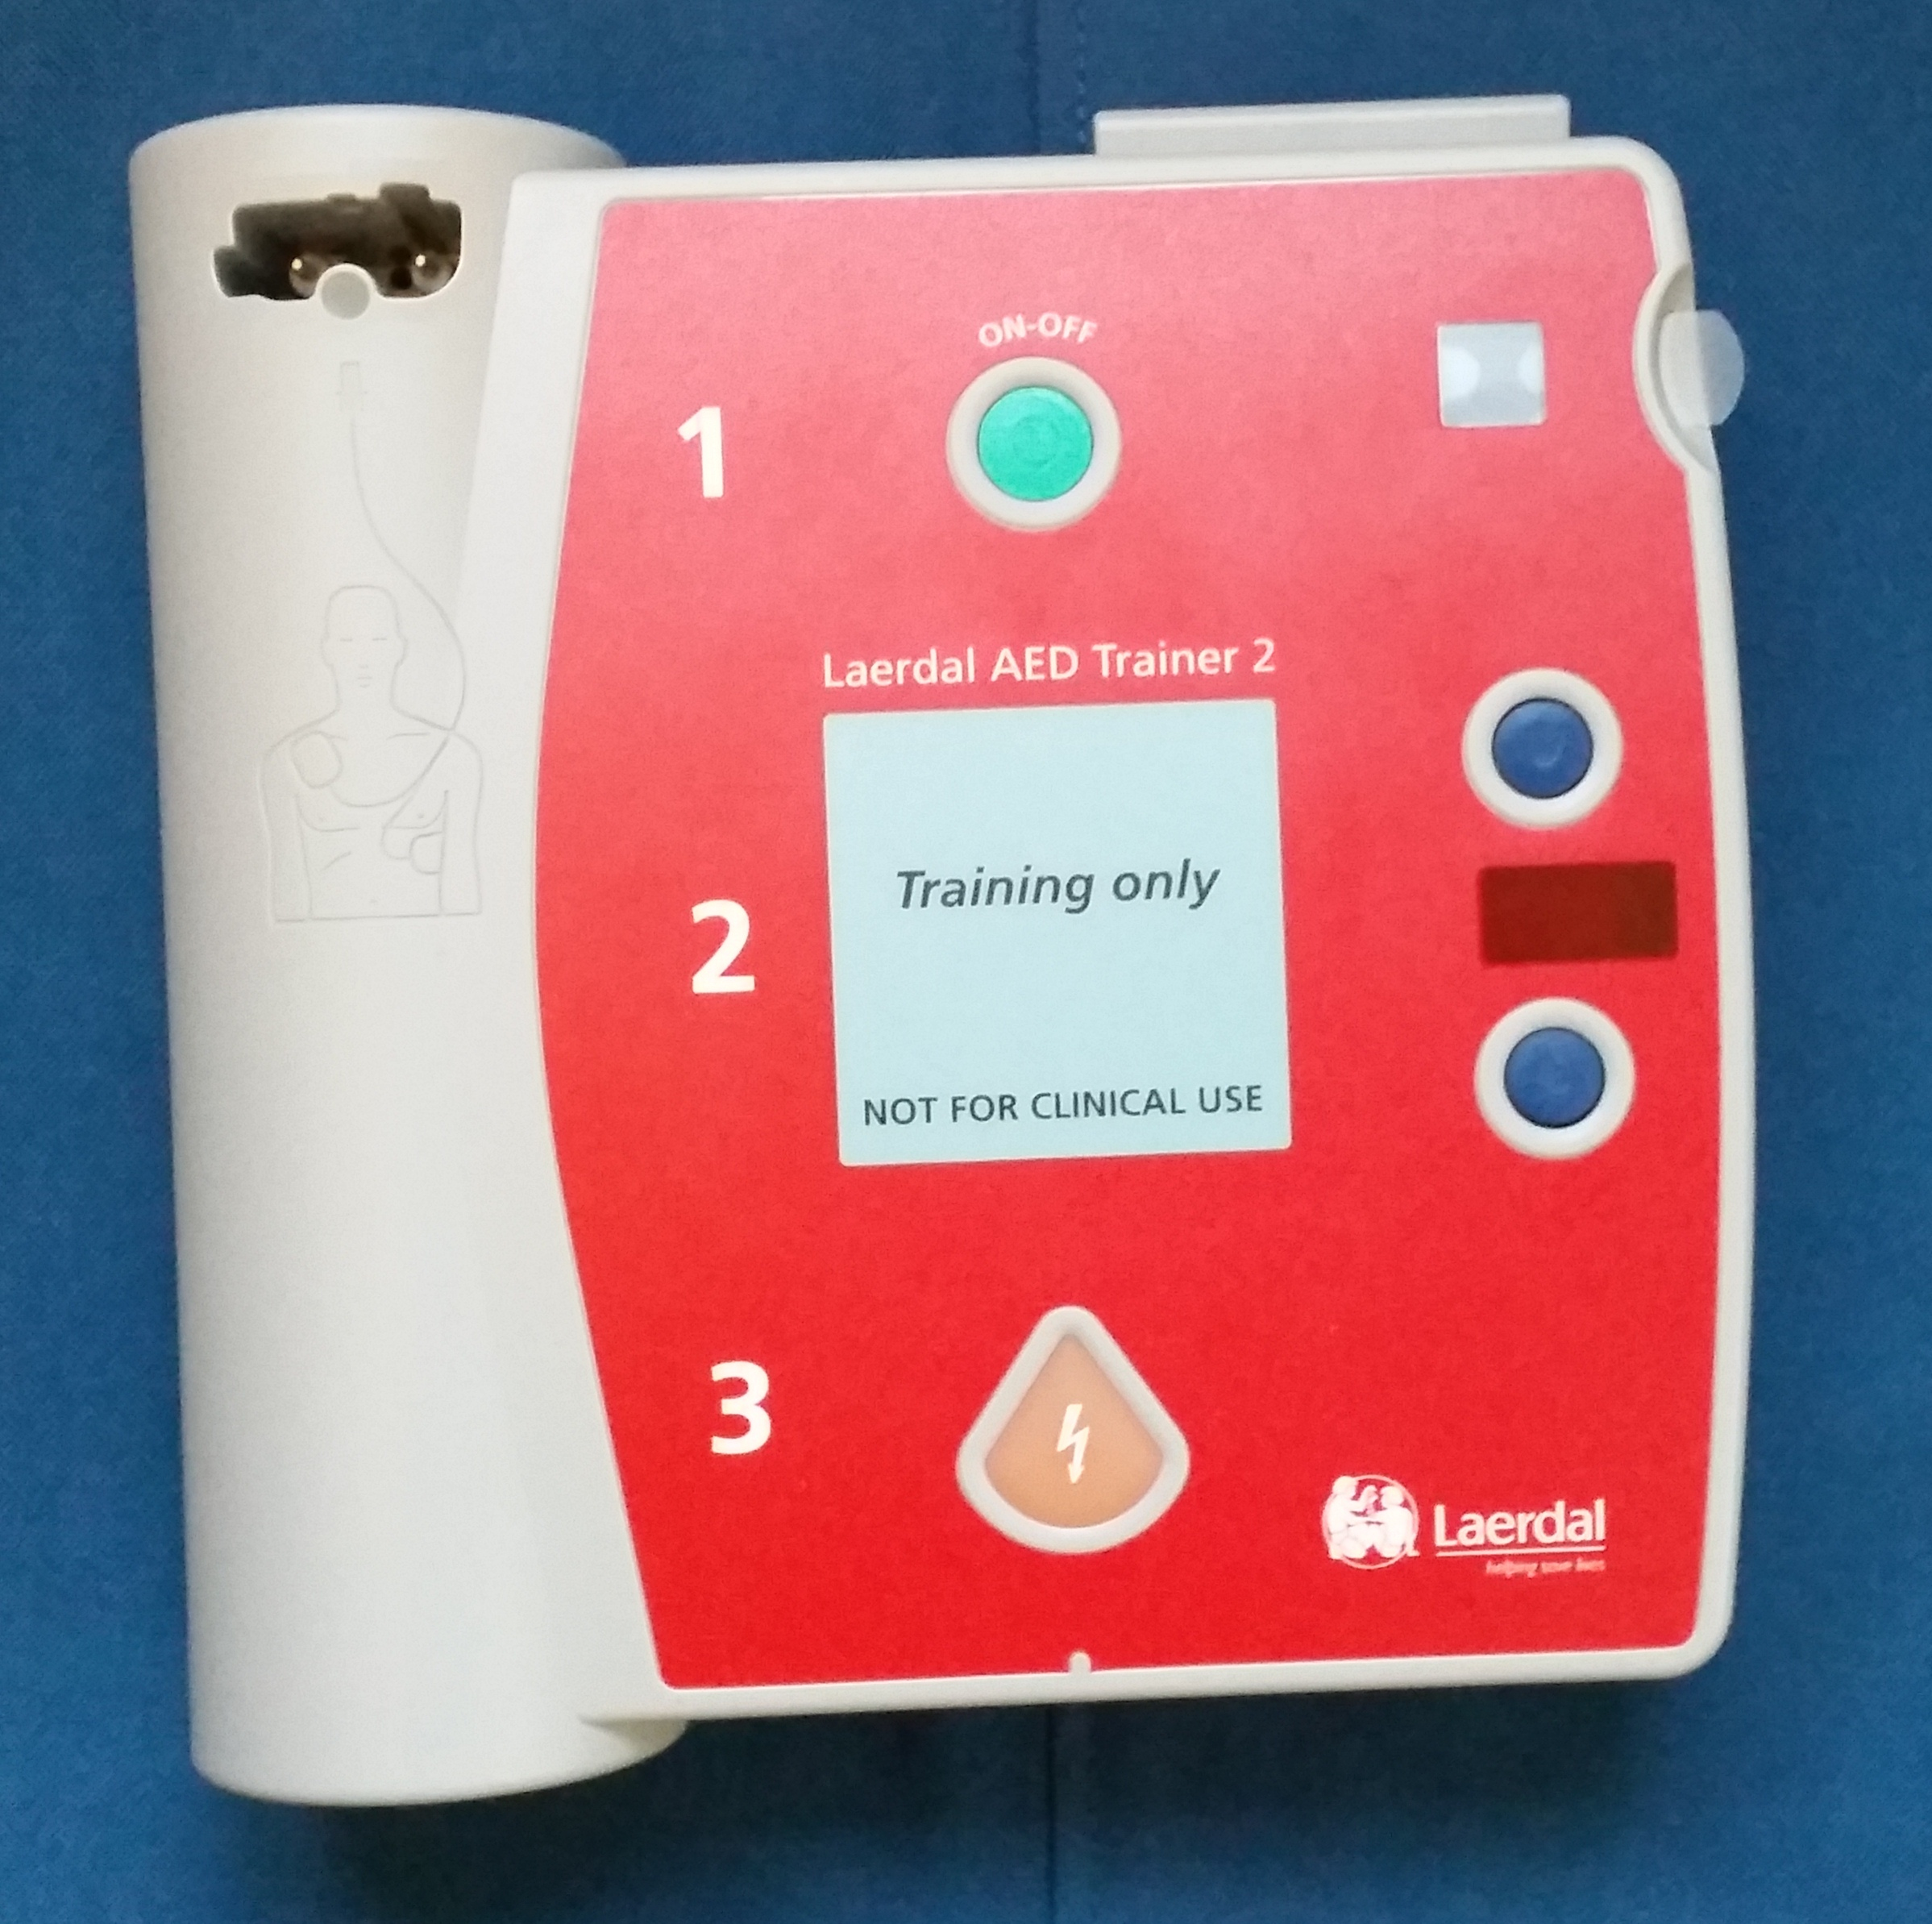 AED and Basic Life Support Training courses